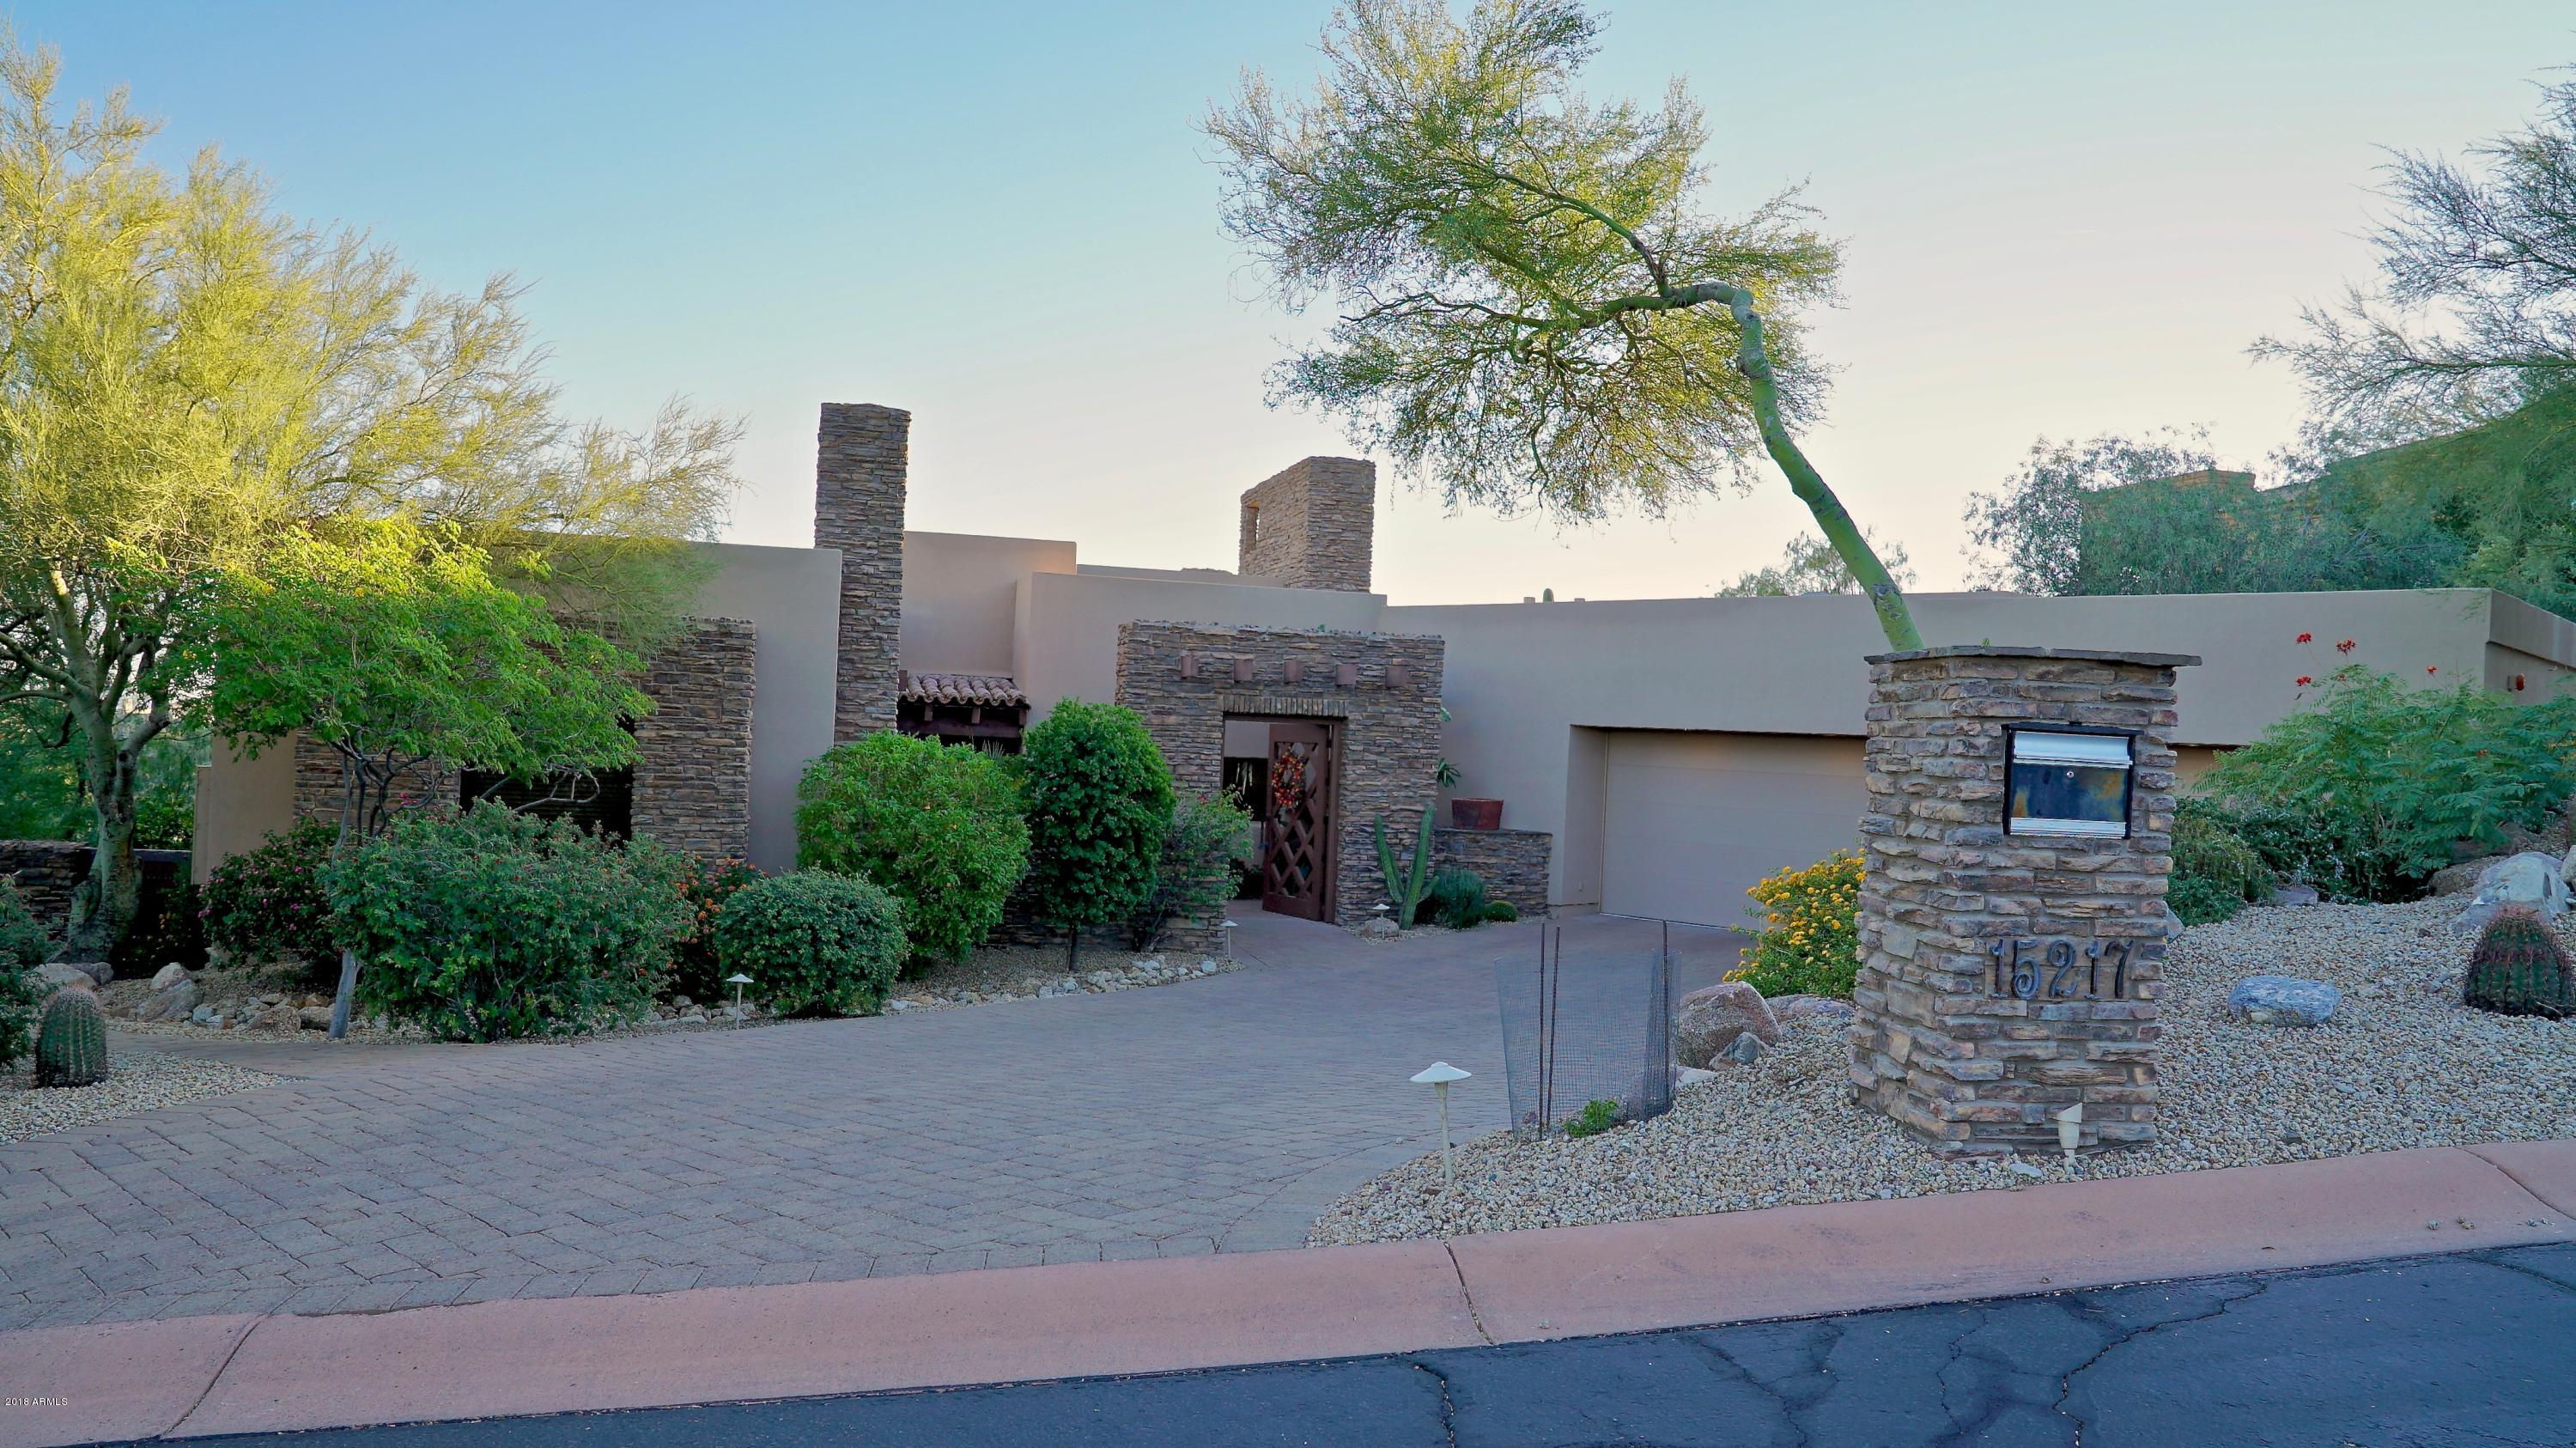 Photo of 15217 E CHOLLA CREST Trail, Fountain Hills, AZ 85268